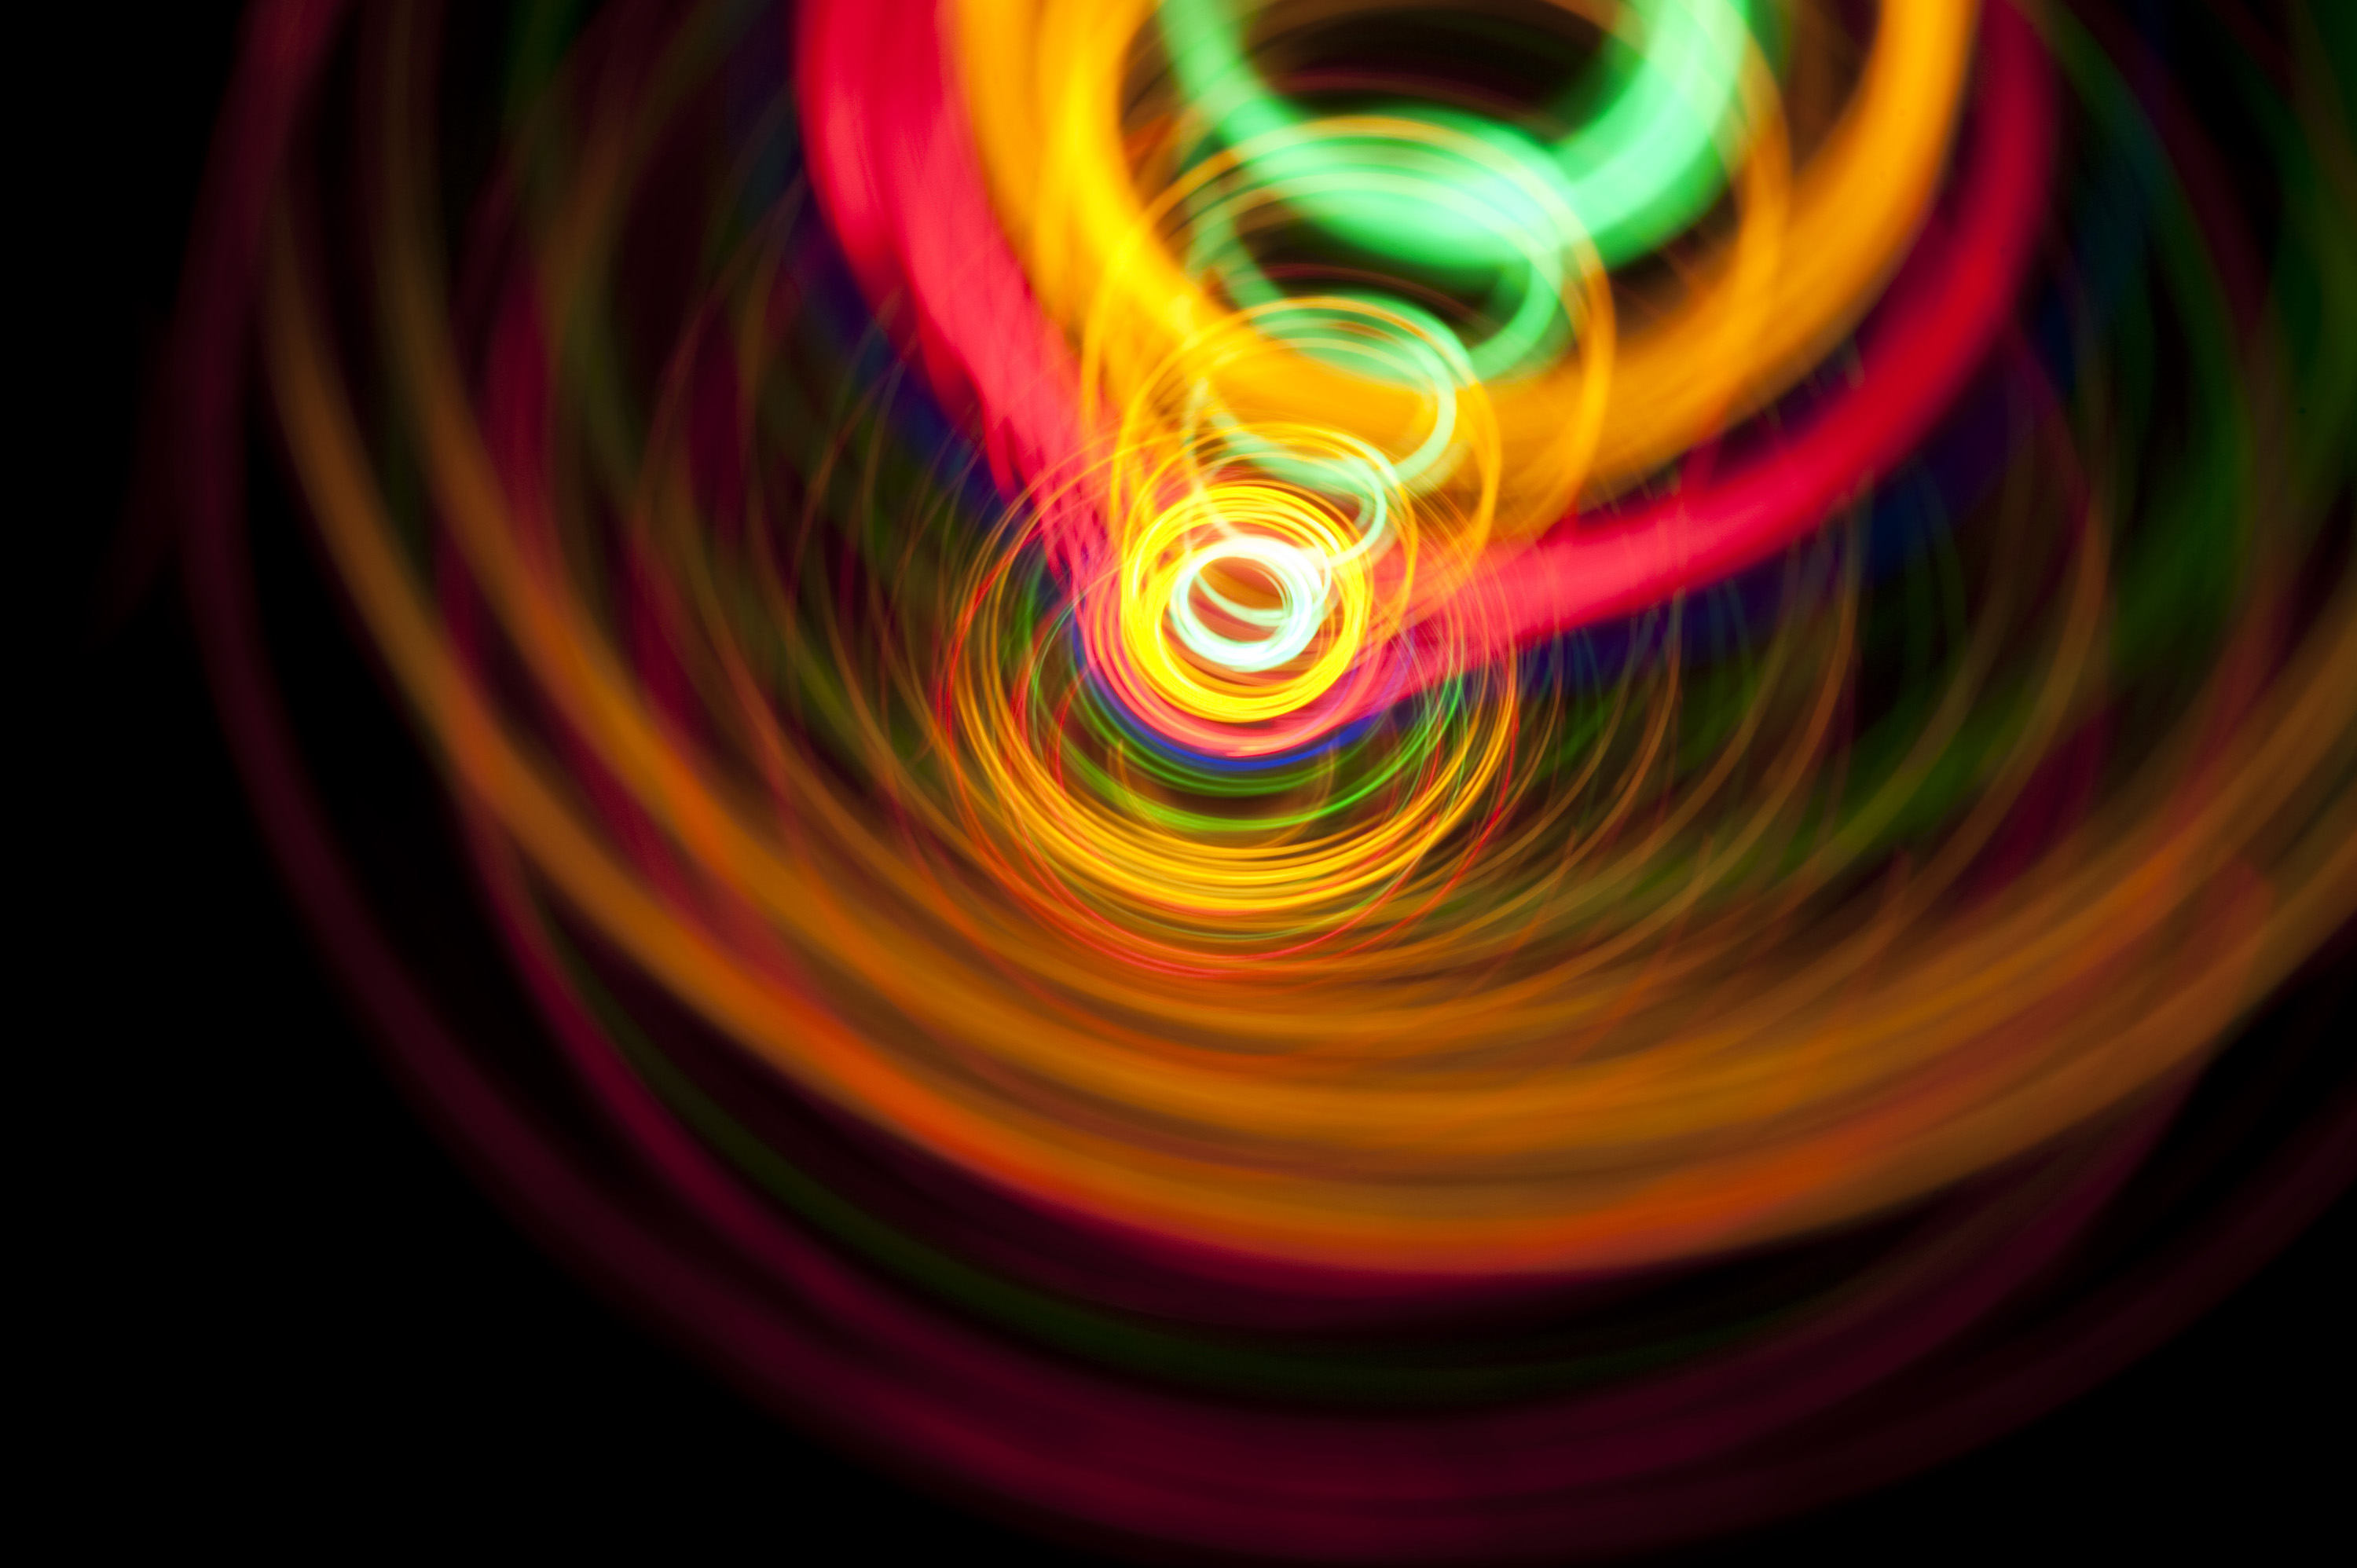 a vortex of spinning light creating a whirlpool effect